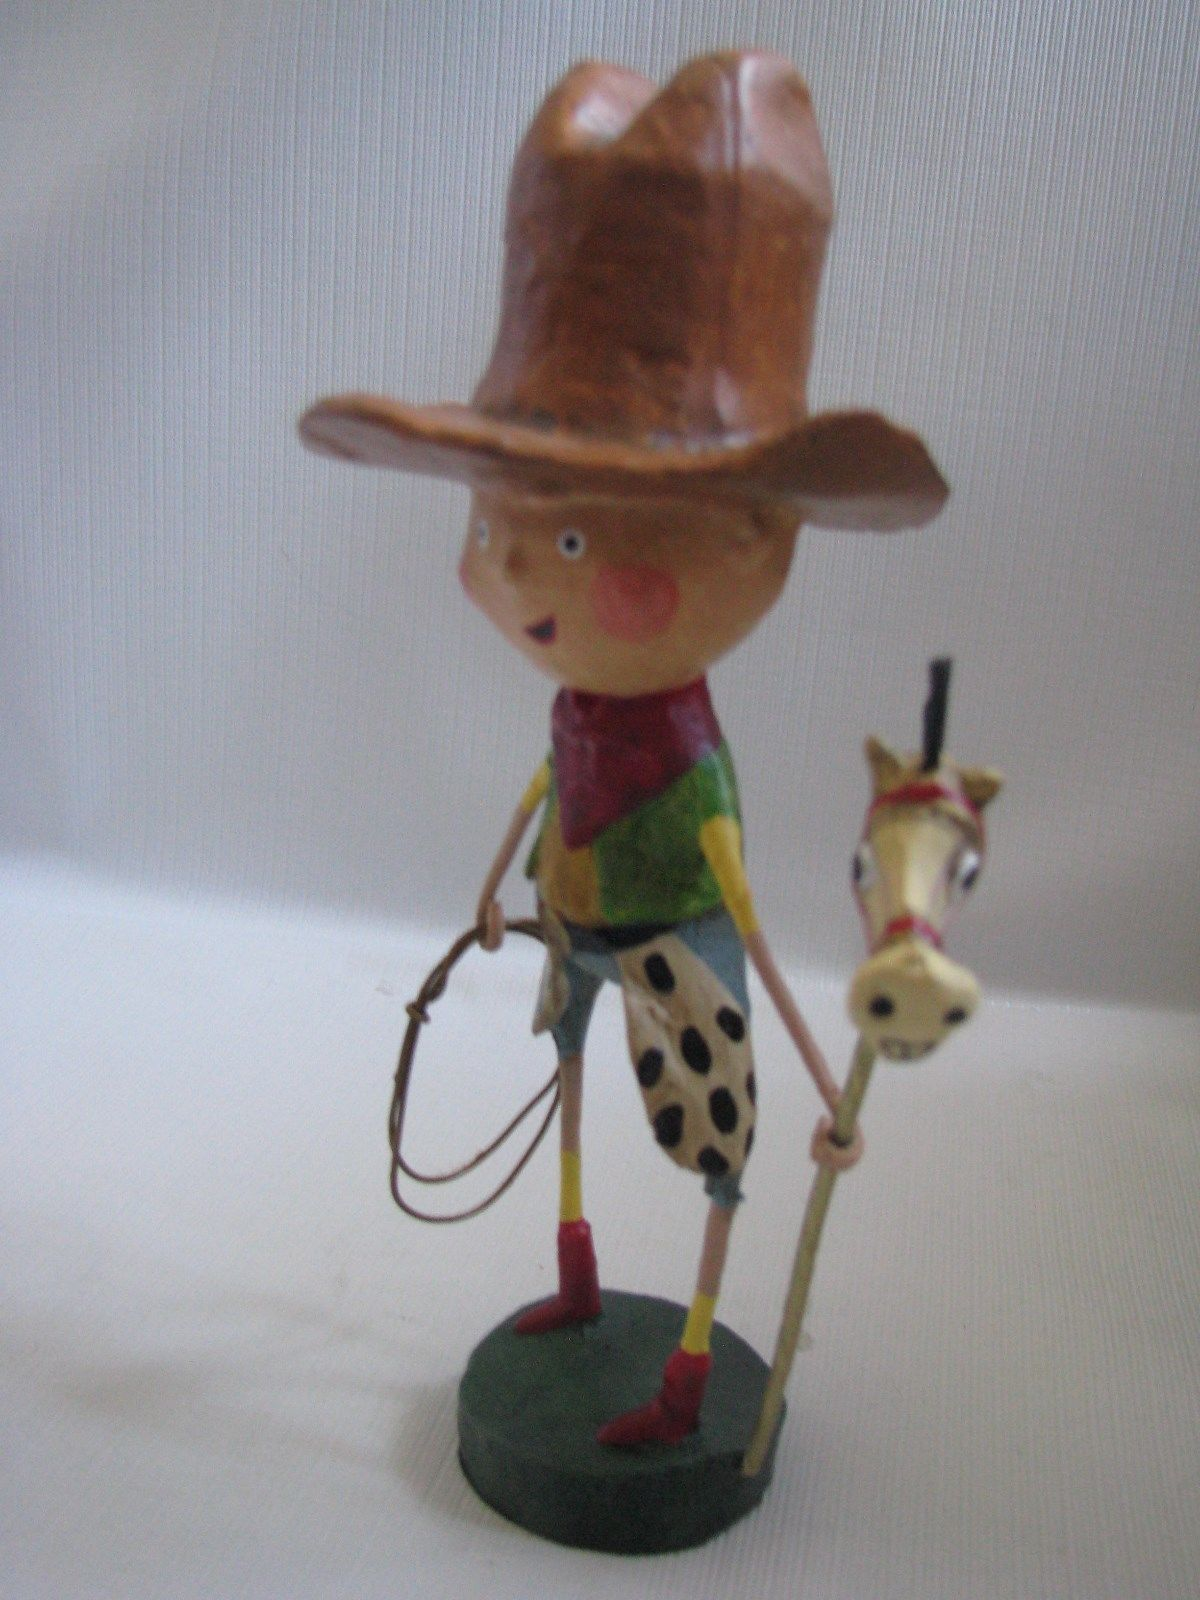 New Getty Up Lil'  Cowboy Figure  by LORI MITCHELL  Lasso Hobby Horse